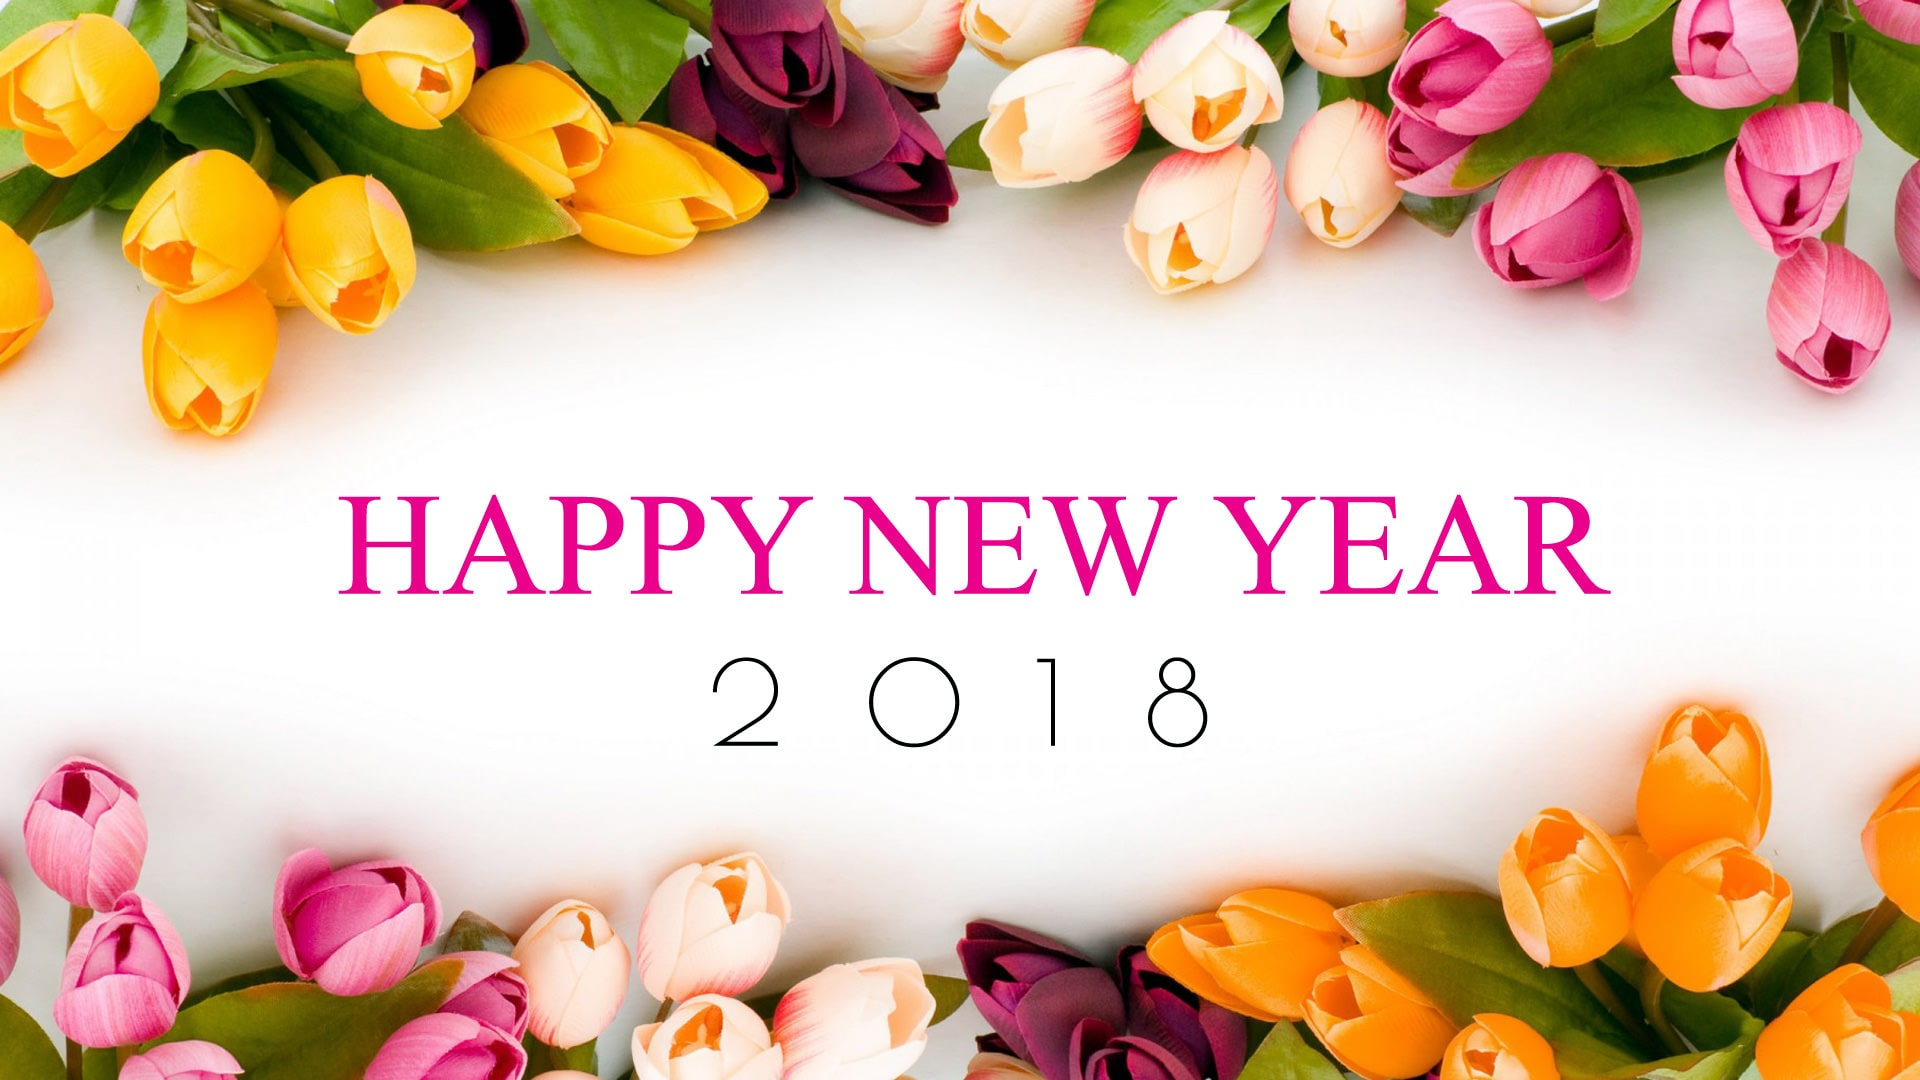 Happy New Year Wishes for Crush|Images Messages Quotes Greetings 2018